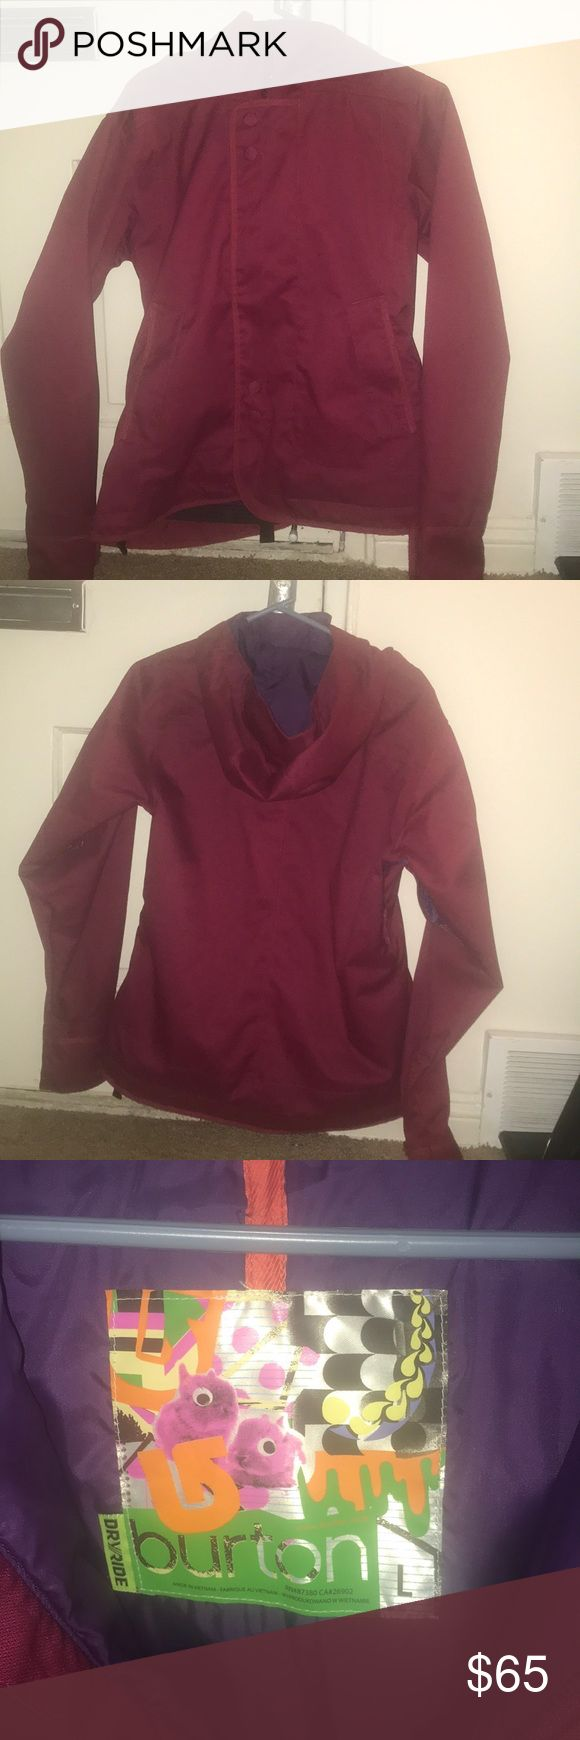 Winter jacket, Burton Dry ride, Size L Burton Dry ride snow boarding jacket Raspberry color, zipper with Velcro  snaps for  around waist assumed for better fit during ride  Worn Twice Perfect condition Burton Jackets & Coats